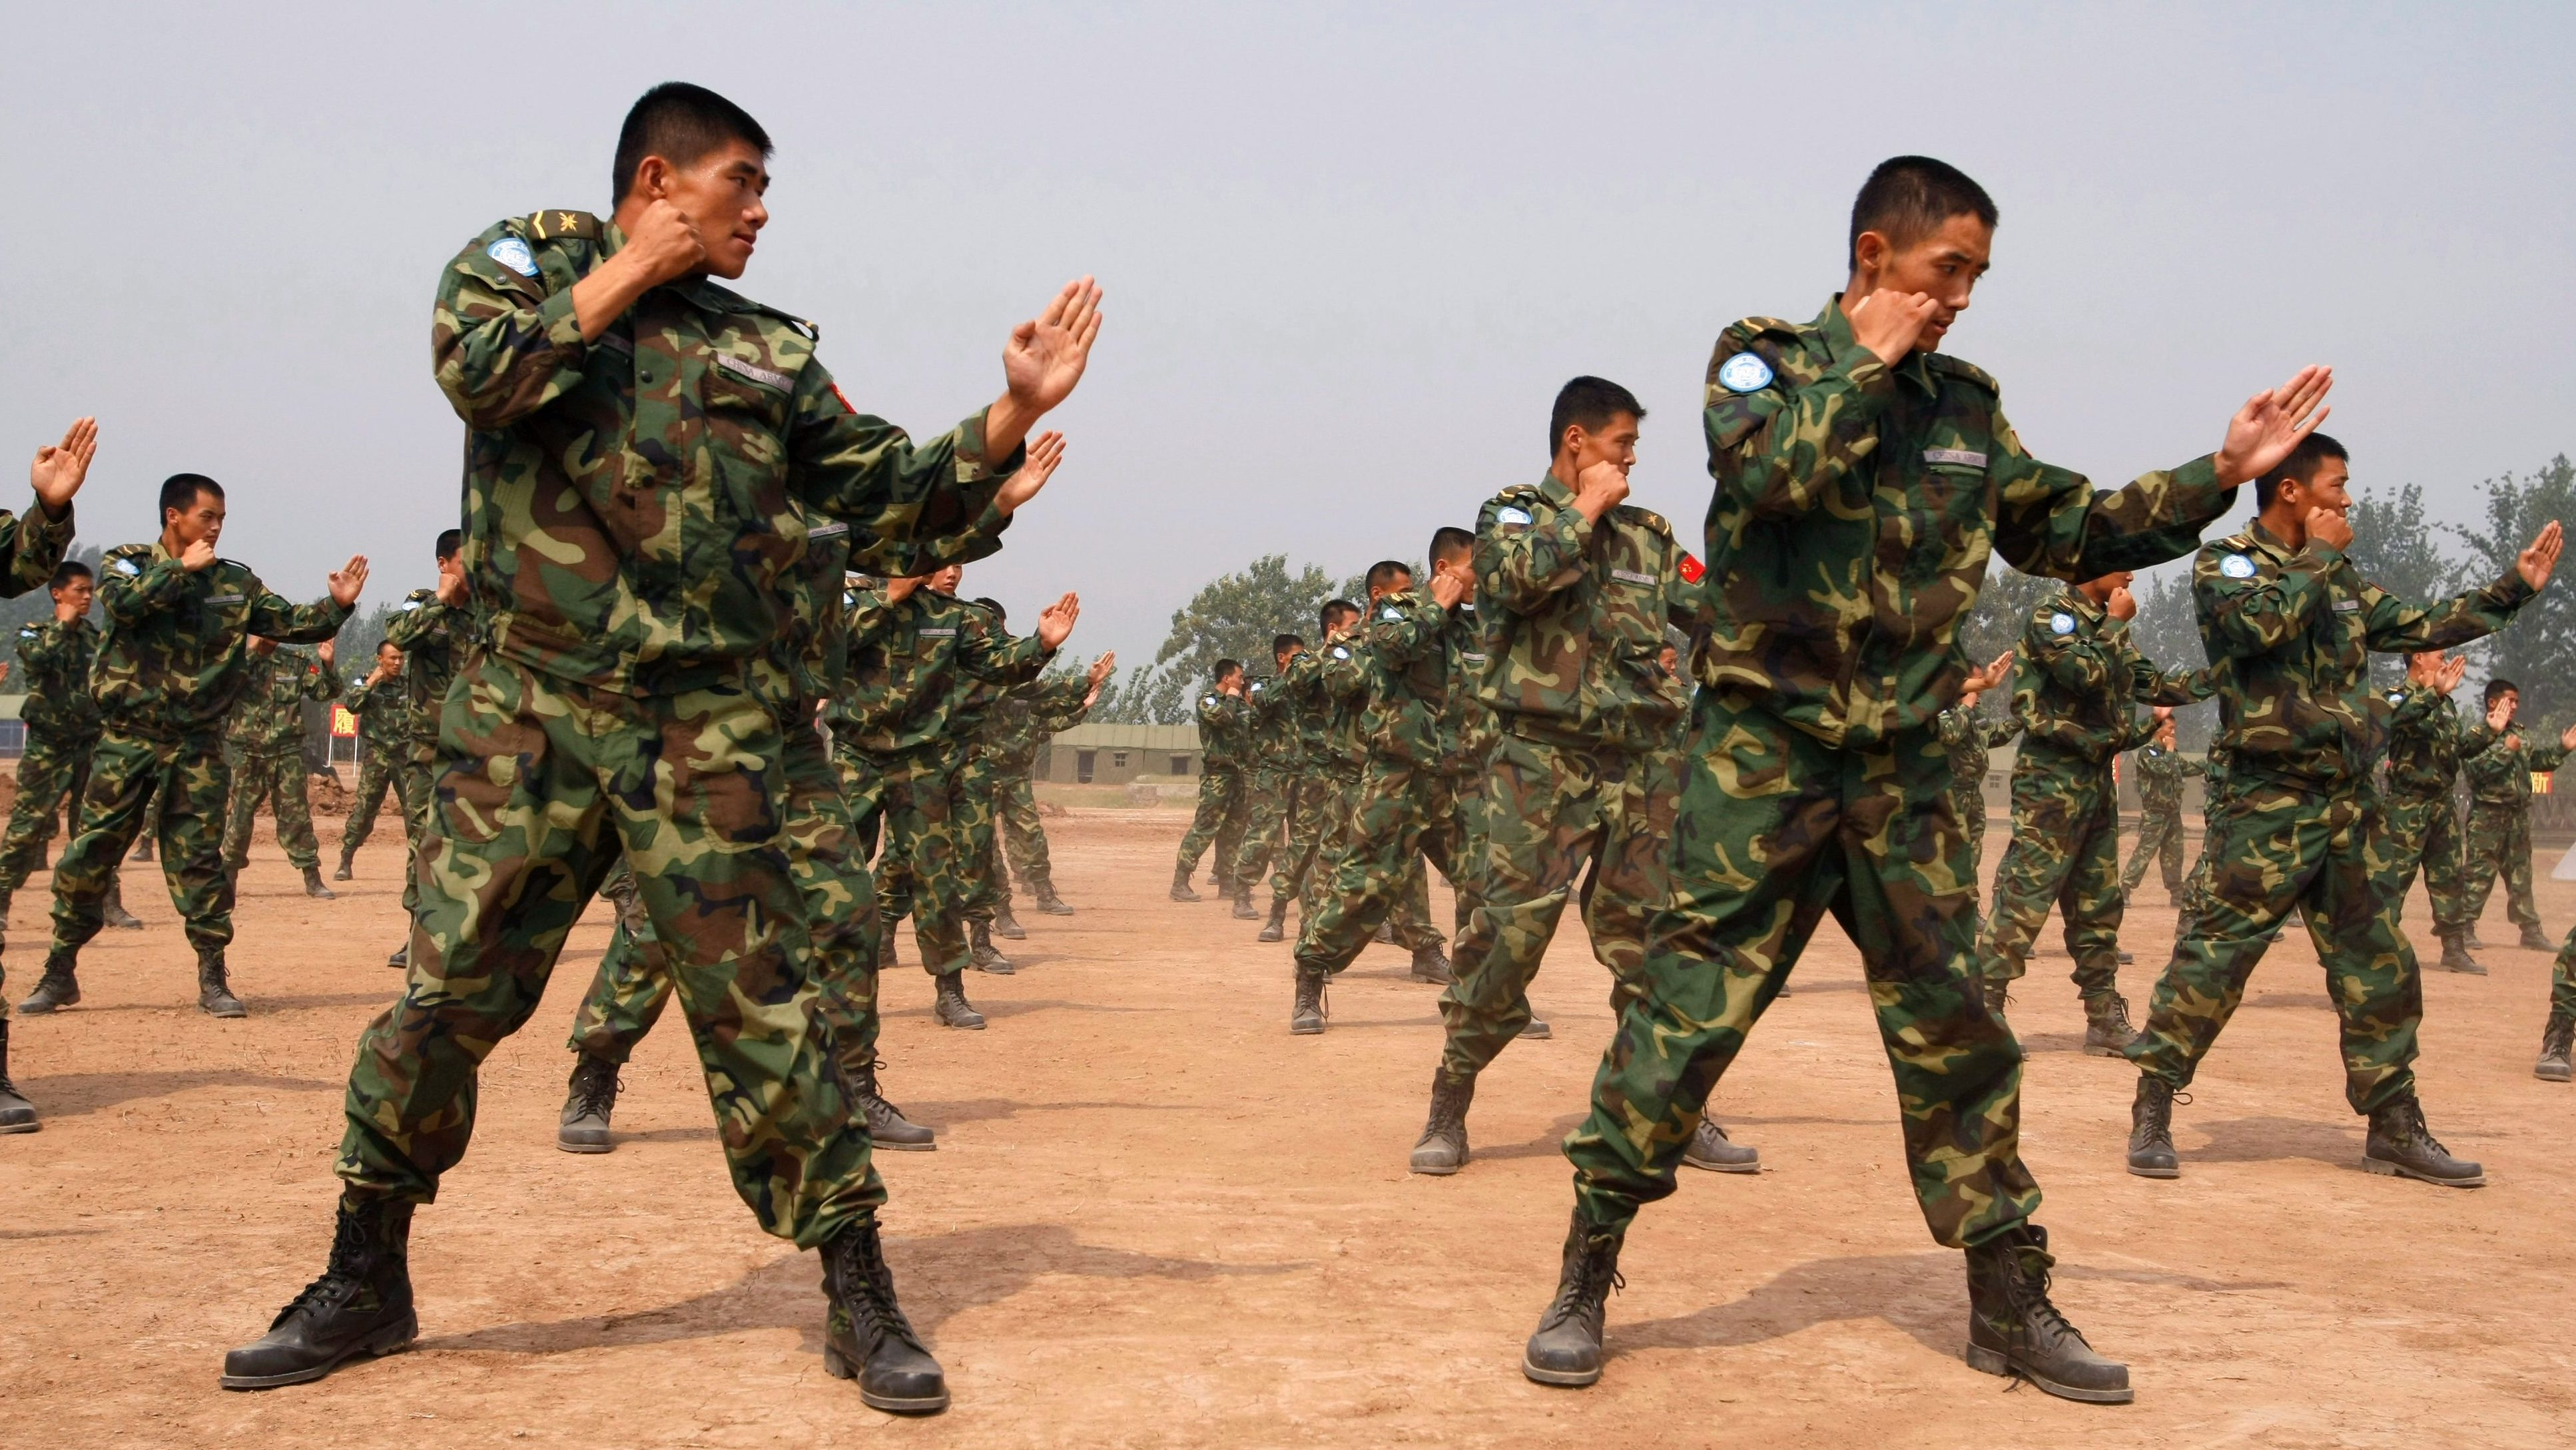 People's Liberation Army (PLA) soldiers deployed for United Nations (UN) peacekeeping missions give a demonstration of their engineering and combat skills at a military base in Qinyang, Henan province, China, 15 September 2007.  China will send a 315-member engineering unit of peacekeeping soldiers to the Darfur region of Sudan.  The unit will start to be dispatched in the beginning of October 2007 with the primary task of building and maintaining roads, helipads, bridges and barracks.  There are currently 1,648 Chinese officers and soldiers serving in 10 UN missions and the UN Department of Peacekeeping Operations (DPKO).